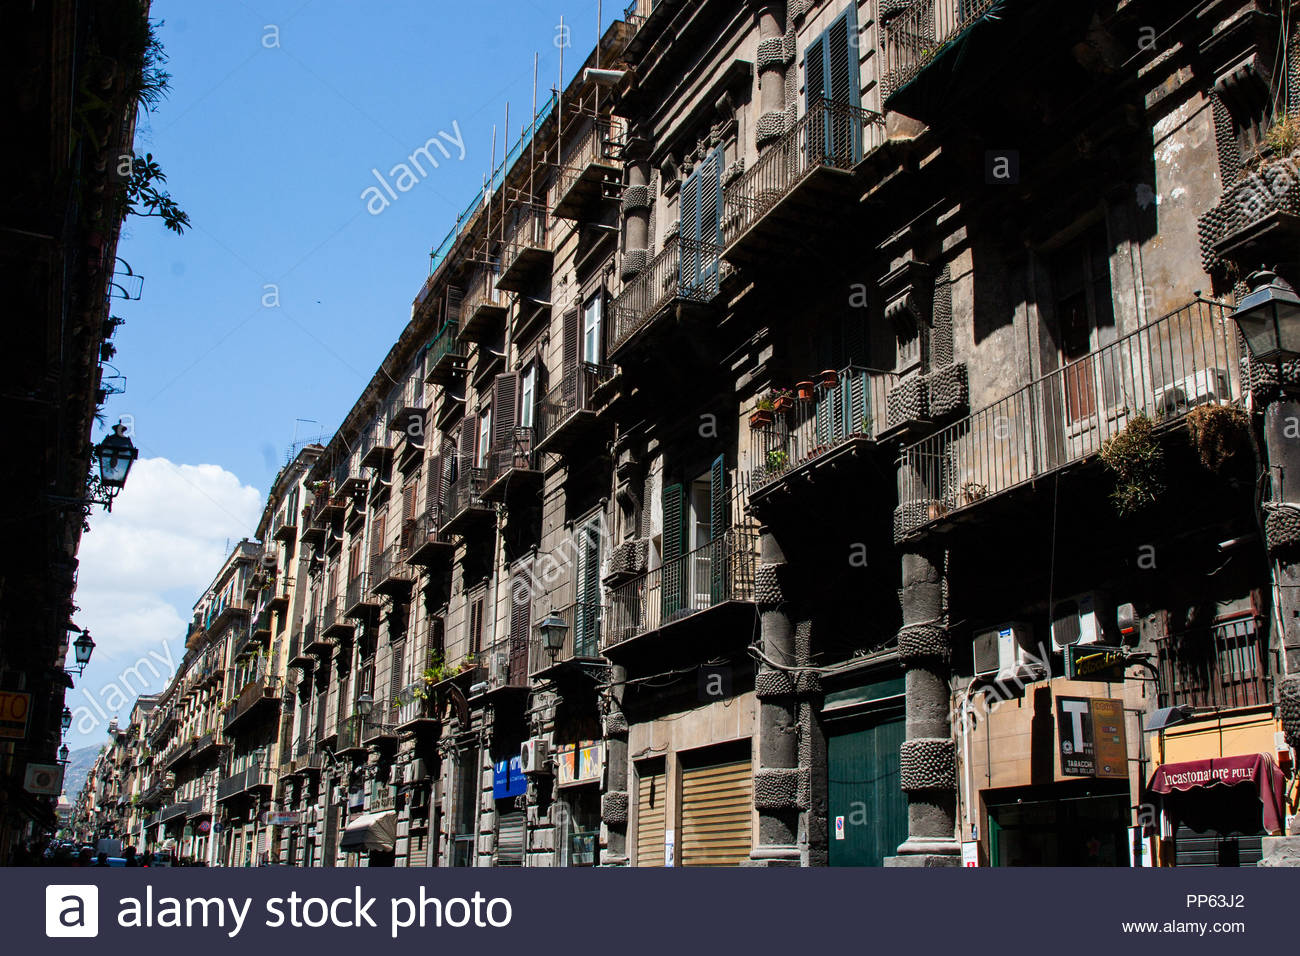 Wallpaper background of Palermo old residential building street 1300x956